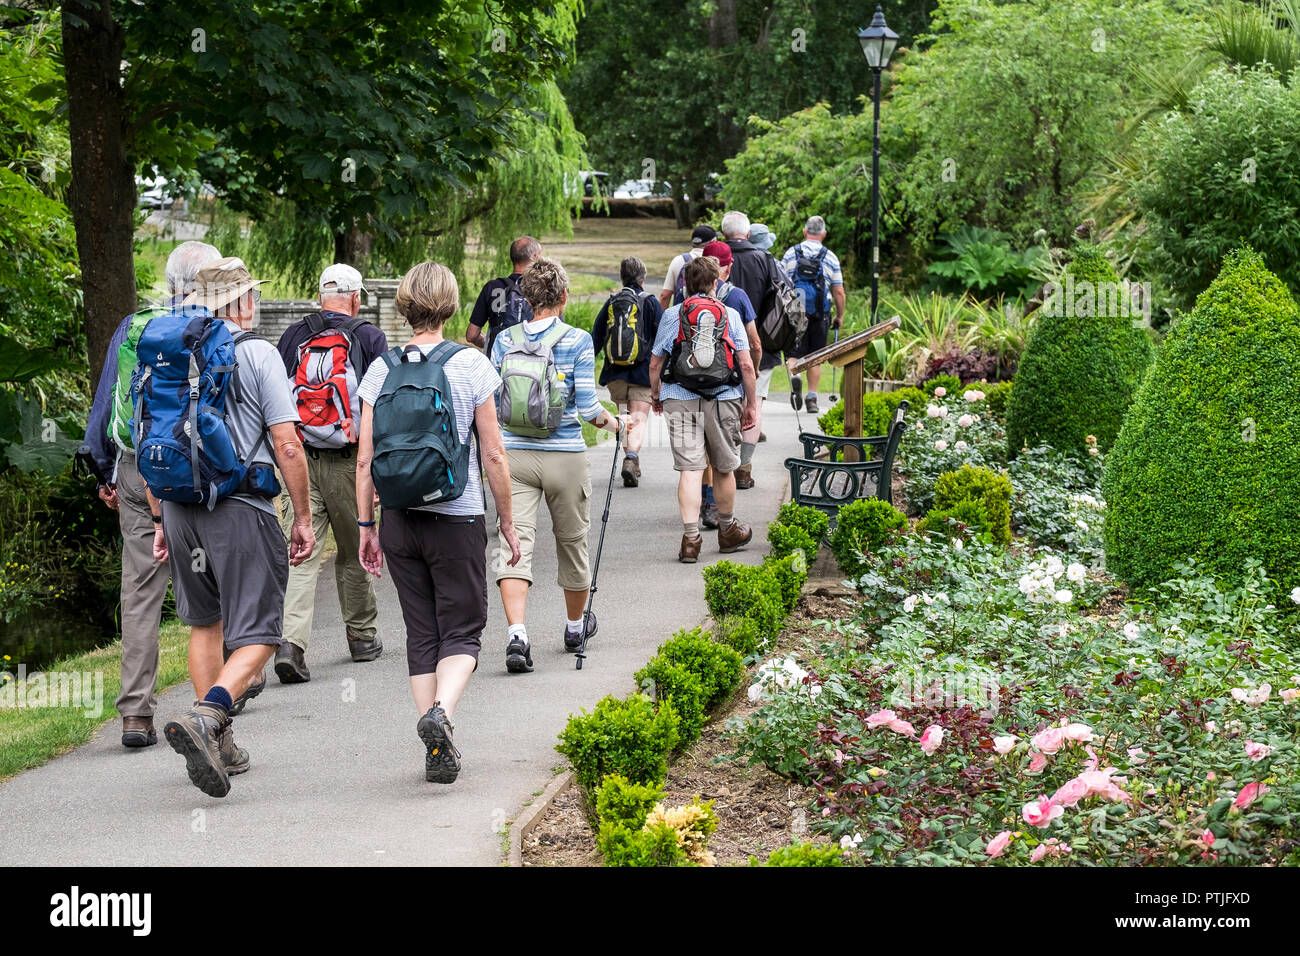 A group of walkers walking through Trenance Park in Newquay in Cornwall. - Stock Image